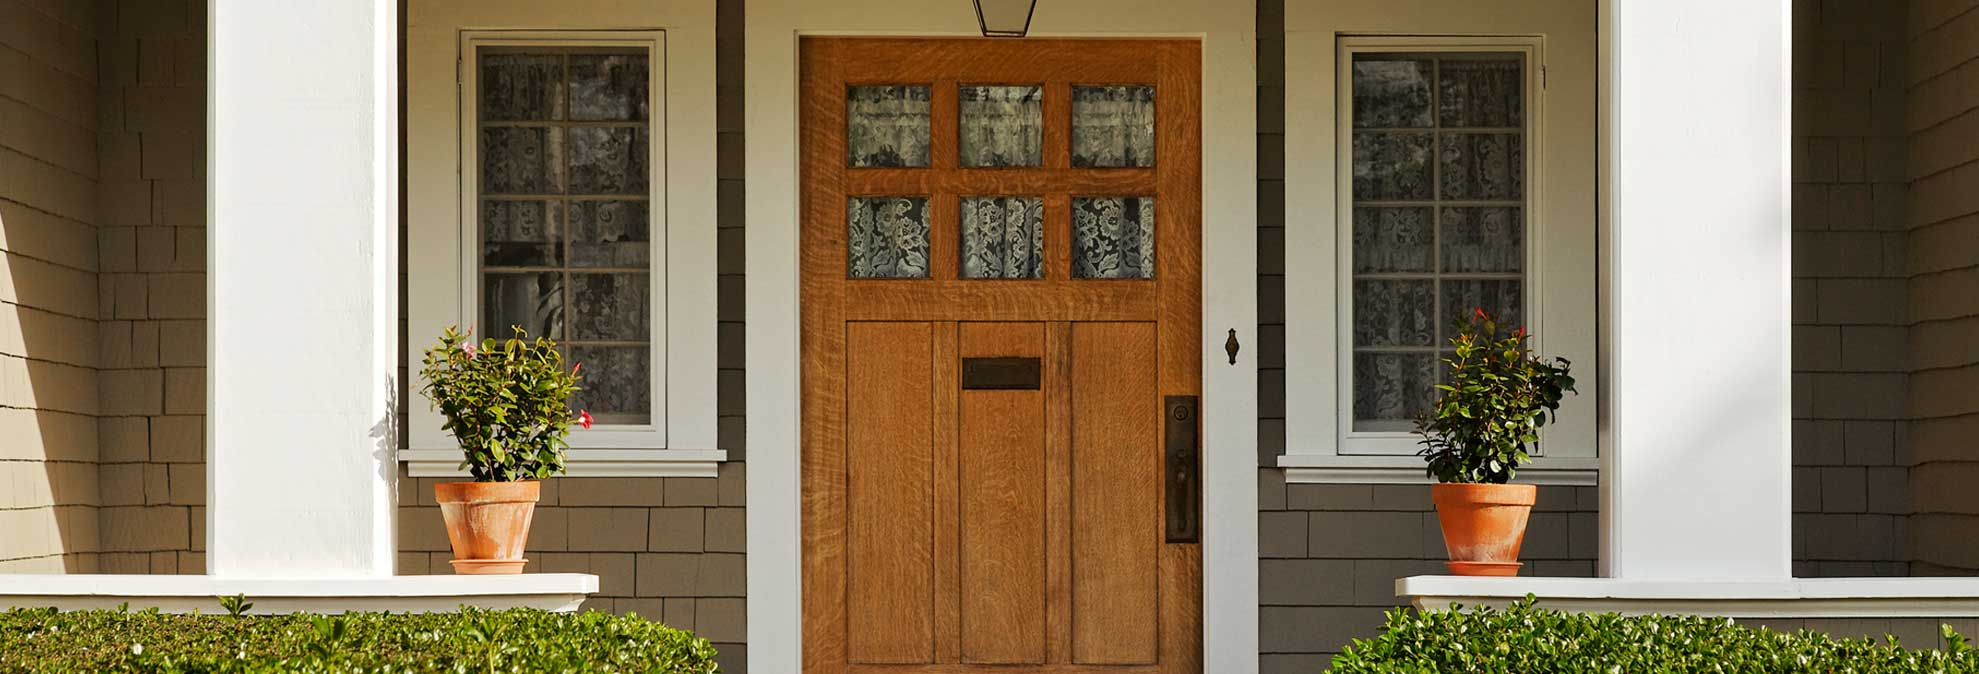 Best entry door buying guide consumer reports for Best entry doors